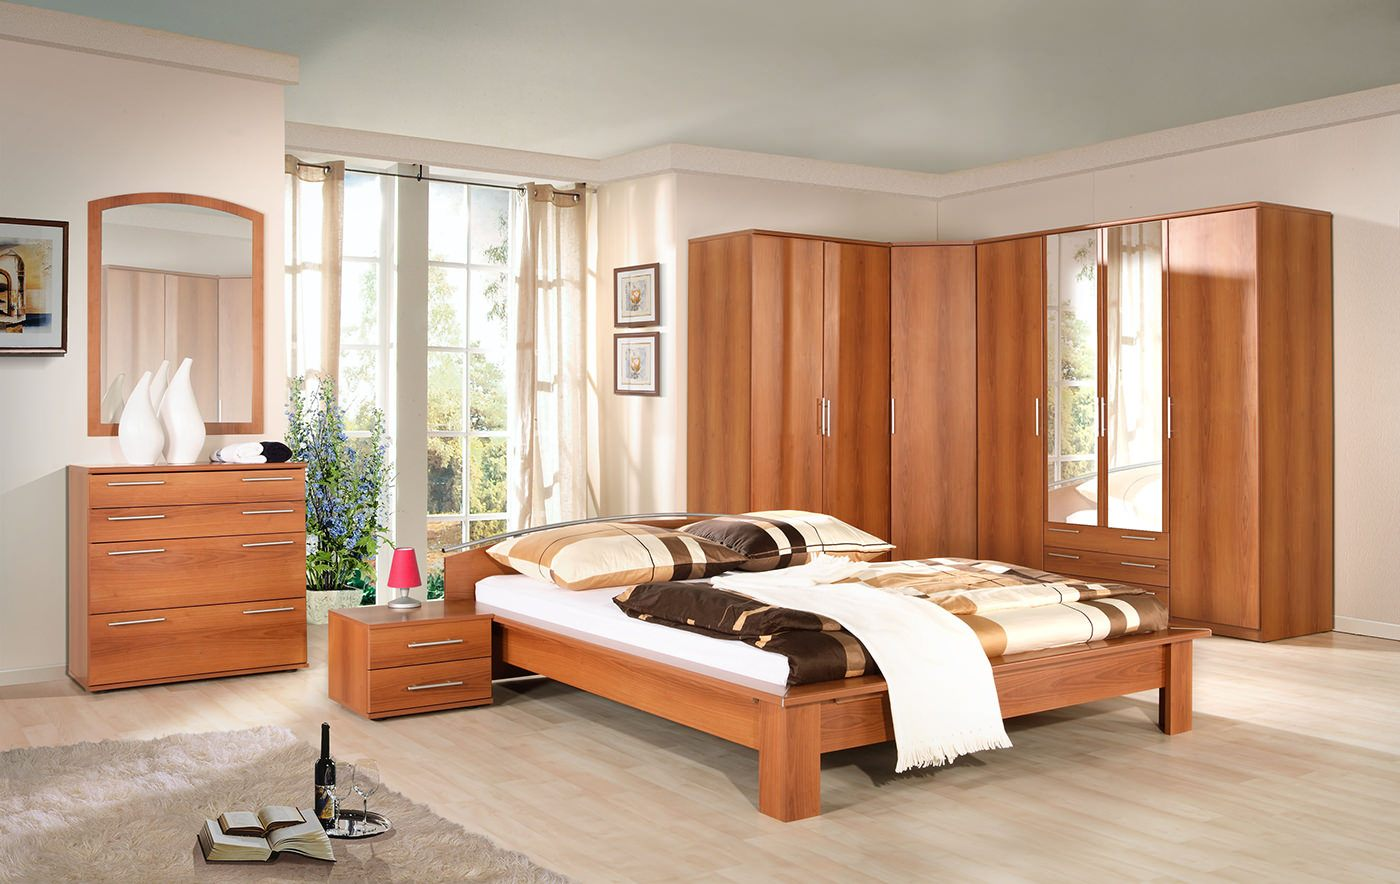 Corner Bedroom Furniture: Arranging Cozy Interior. Large king size bed on sturdy legs and Classic furniture set